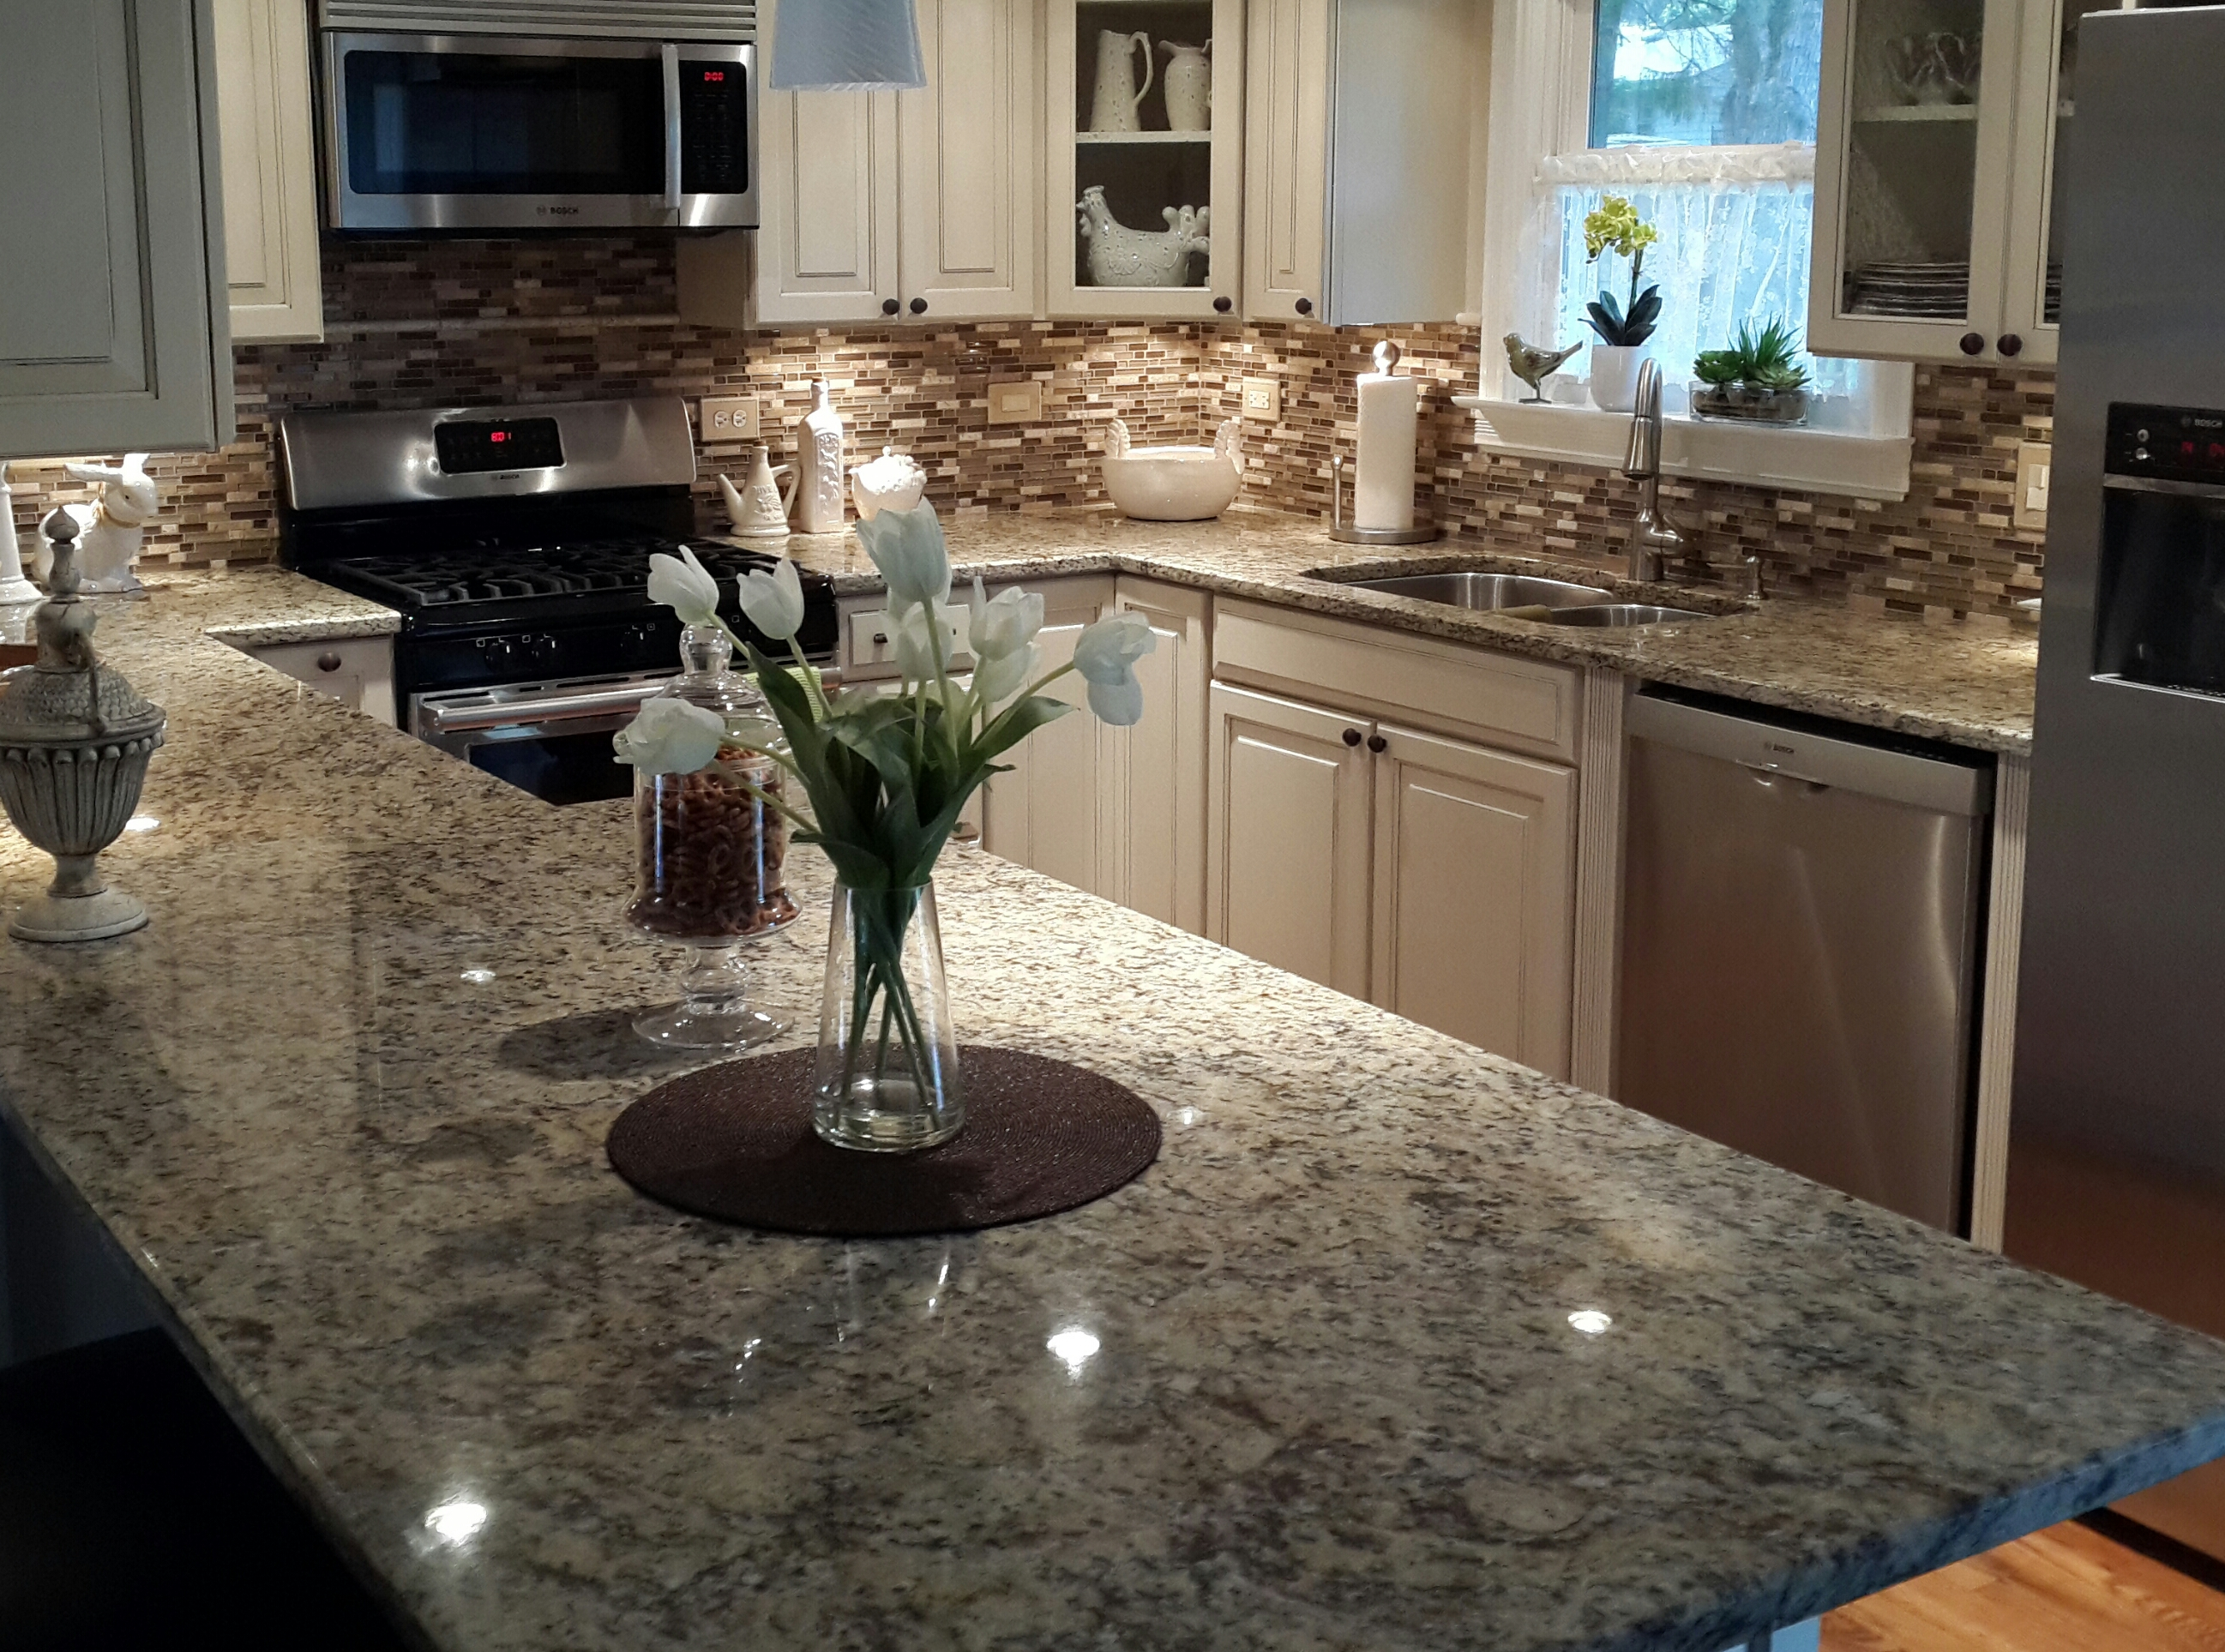 depot installed pictures remodel hex most how image prices laminate counter tile to quartz designs granite of kitchen without for cos home decoration lowes no tops bathroom countertops photos vanity house replace faux install backsplash product cost wonderful decorating obligatory ideas copper countertop